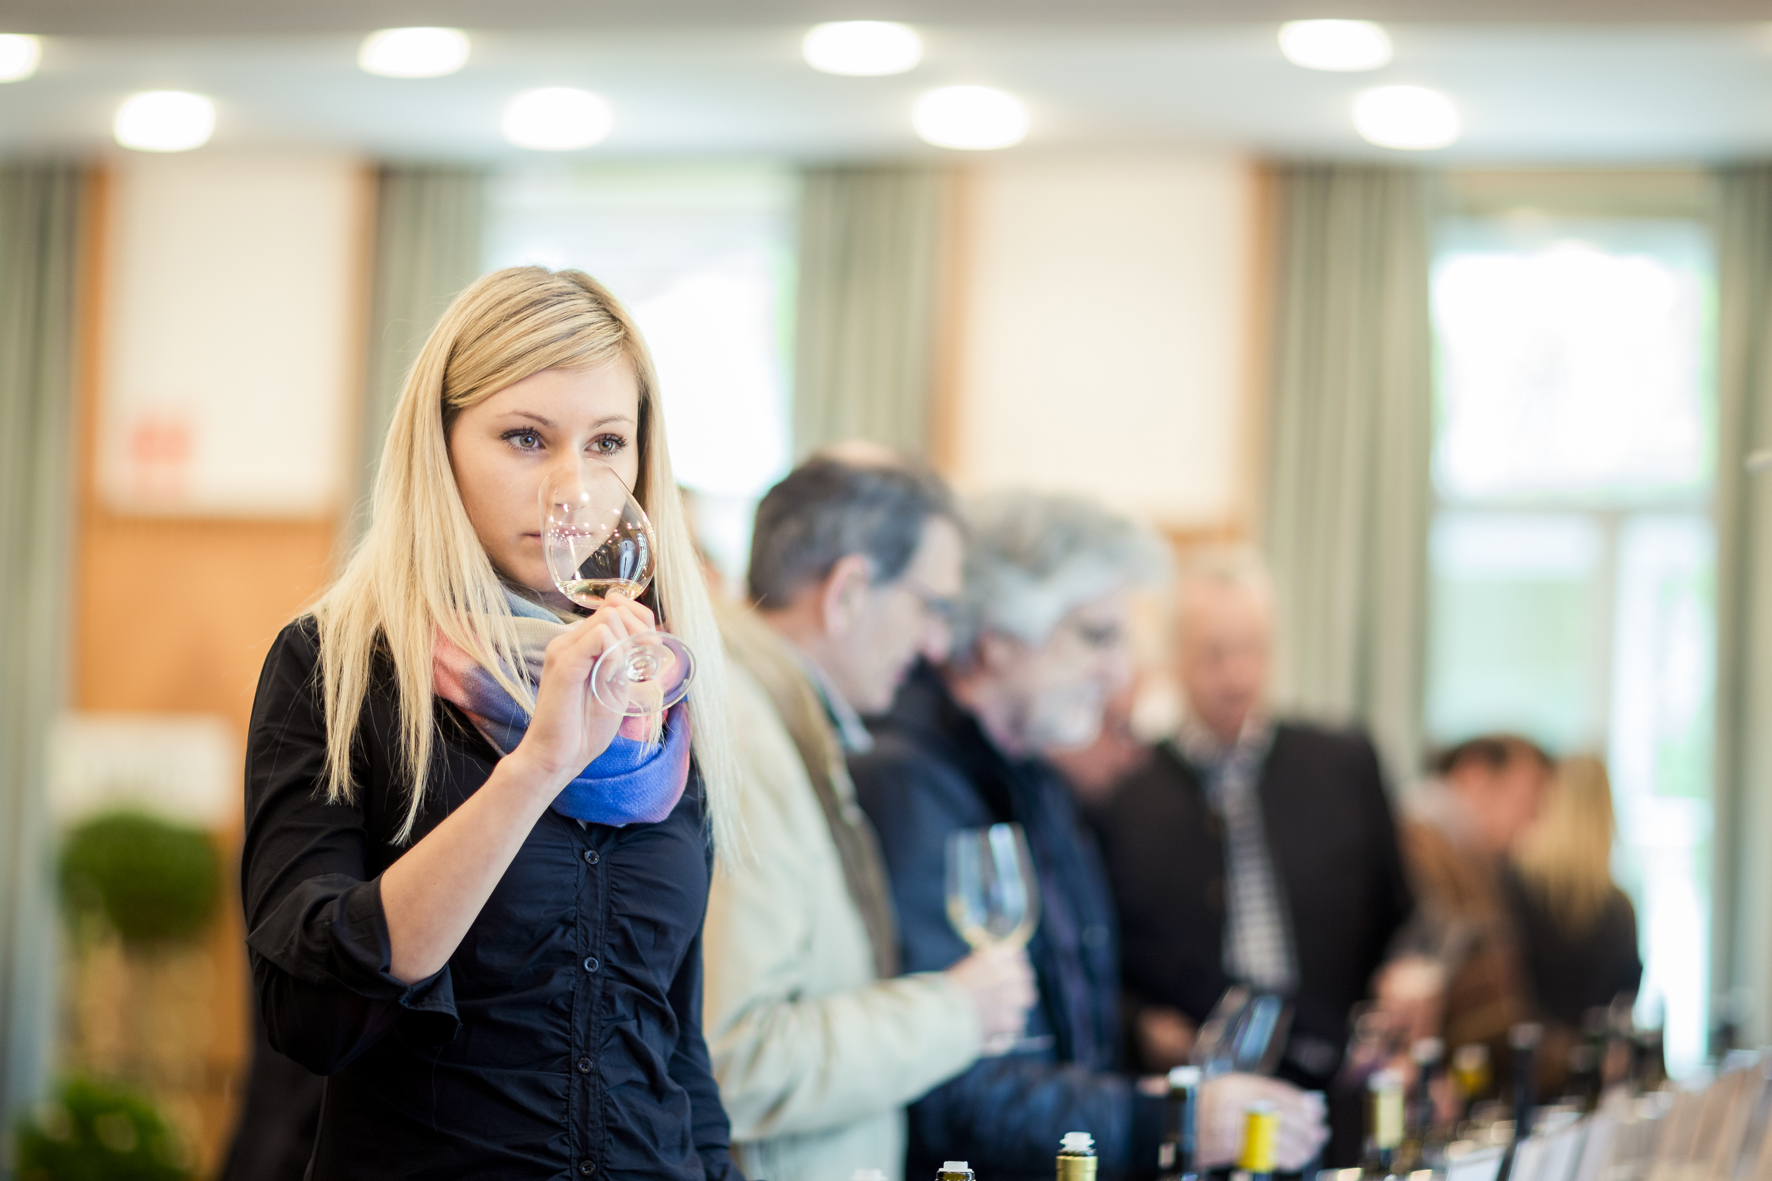 TOP OF VINI: IN VETRINA I VINI PIU' PREMIATI DELL'ALTO ADIGE